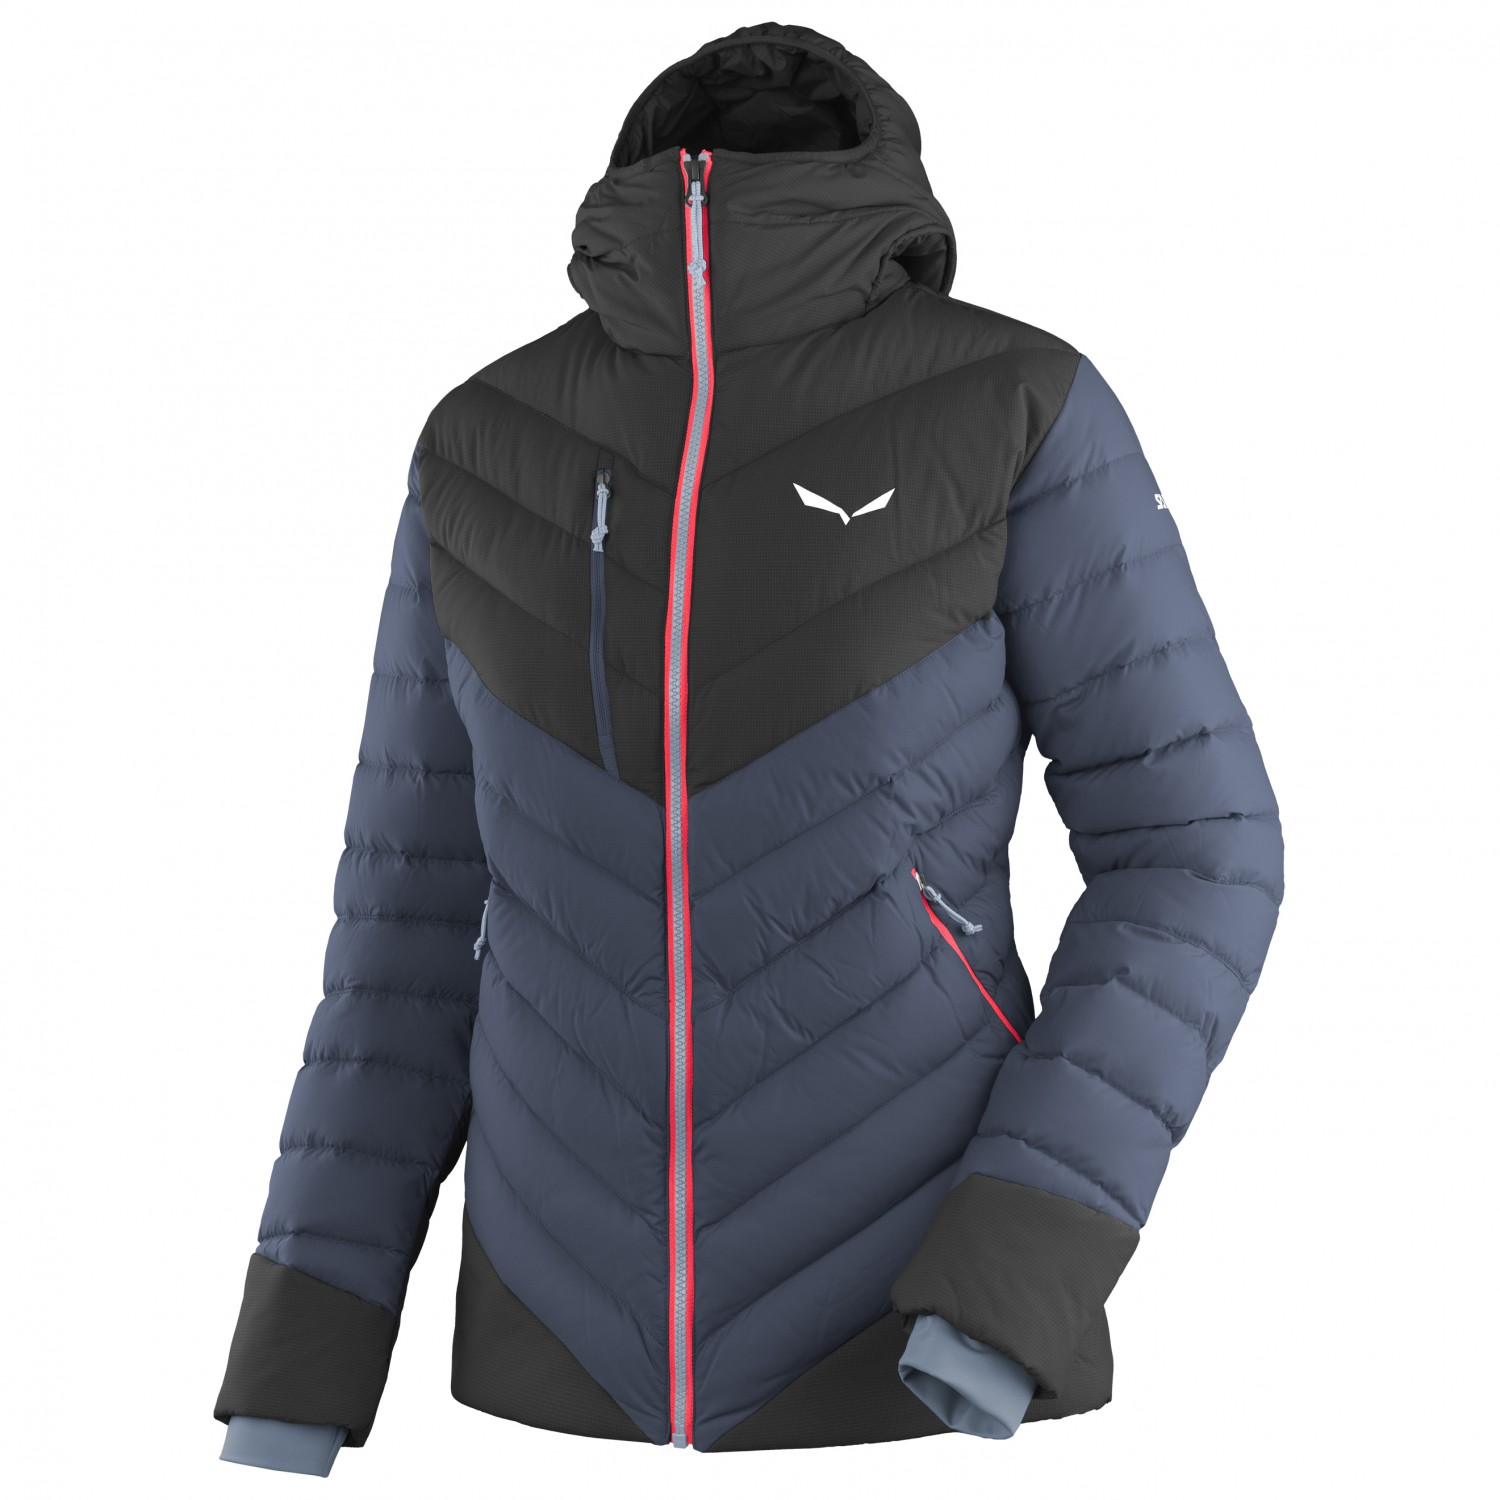 hot sale online 91678 2adf0 Salewa - Women's Ortles Medium 2 Down Jacket - Giacca in piumino - Black  Out / Ombre Blue | 34 (EU)